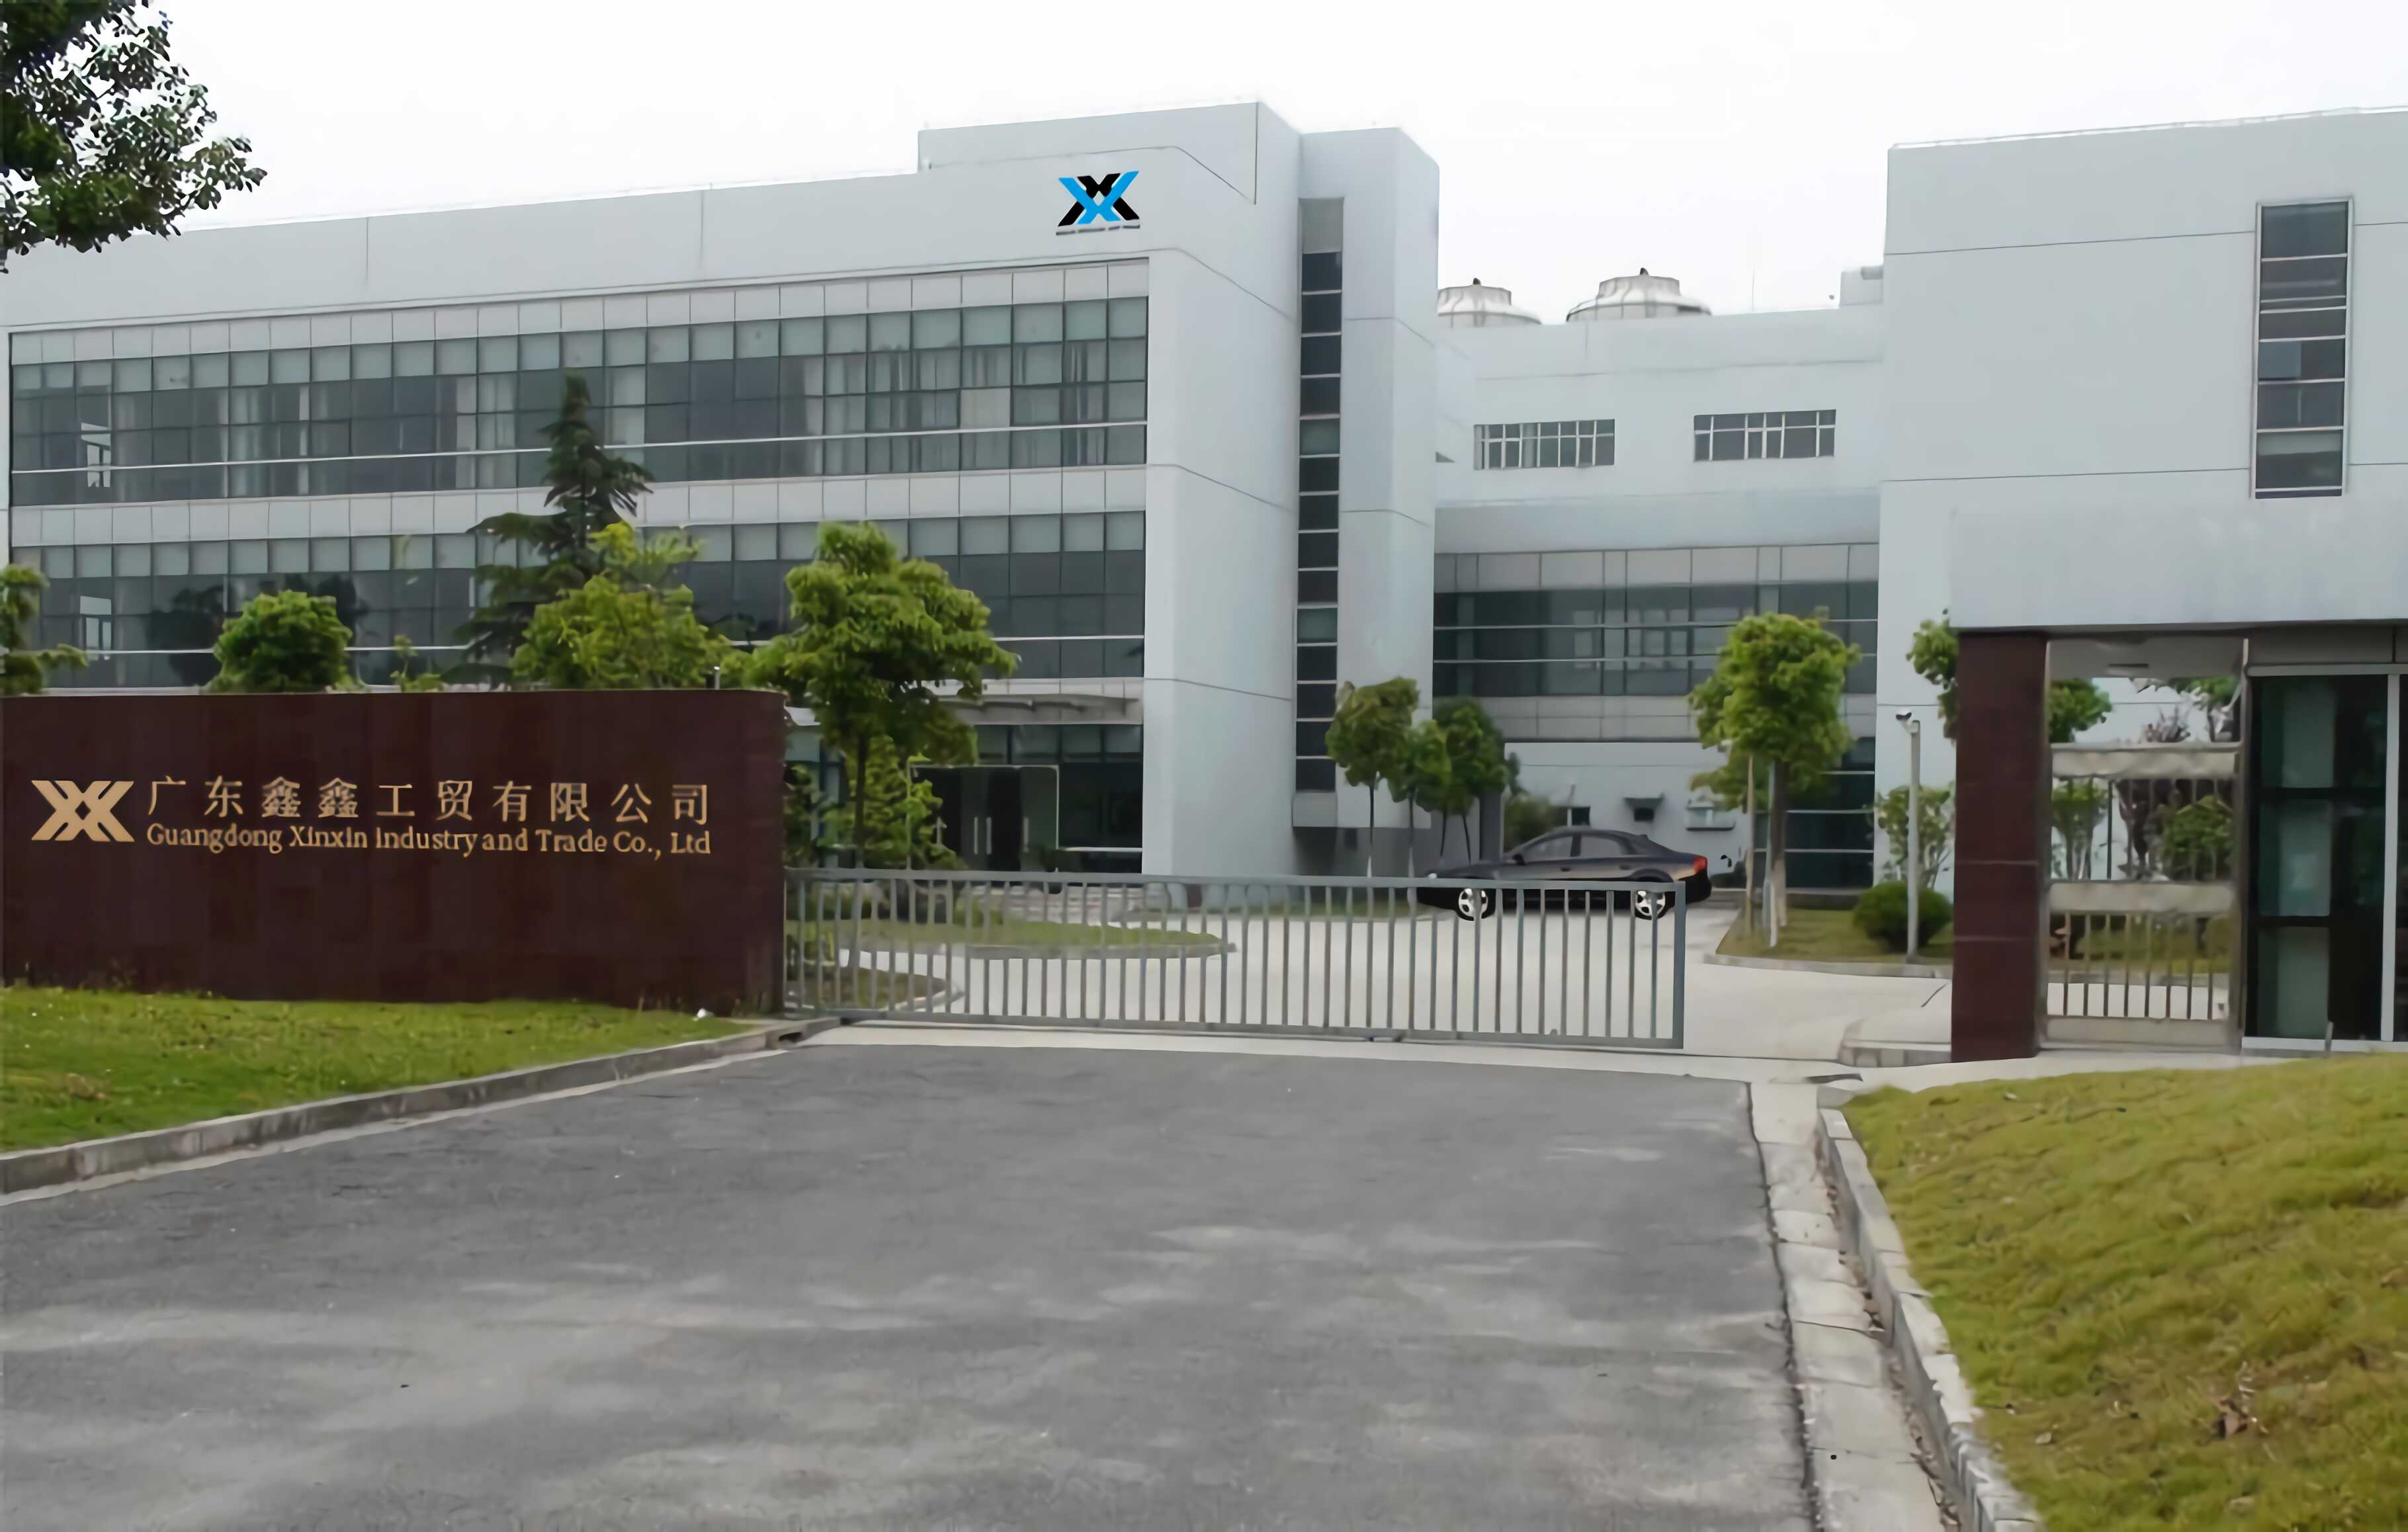 Jieyang Xinxin Industry and Trade Co., Ltd.